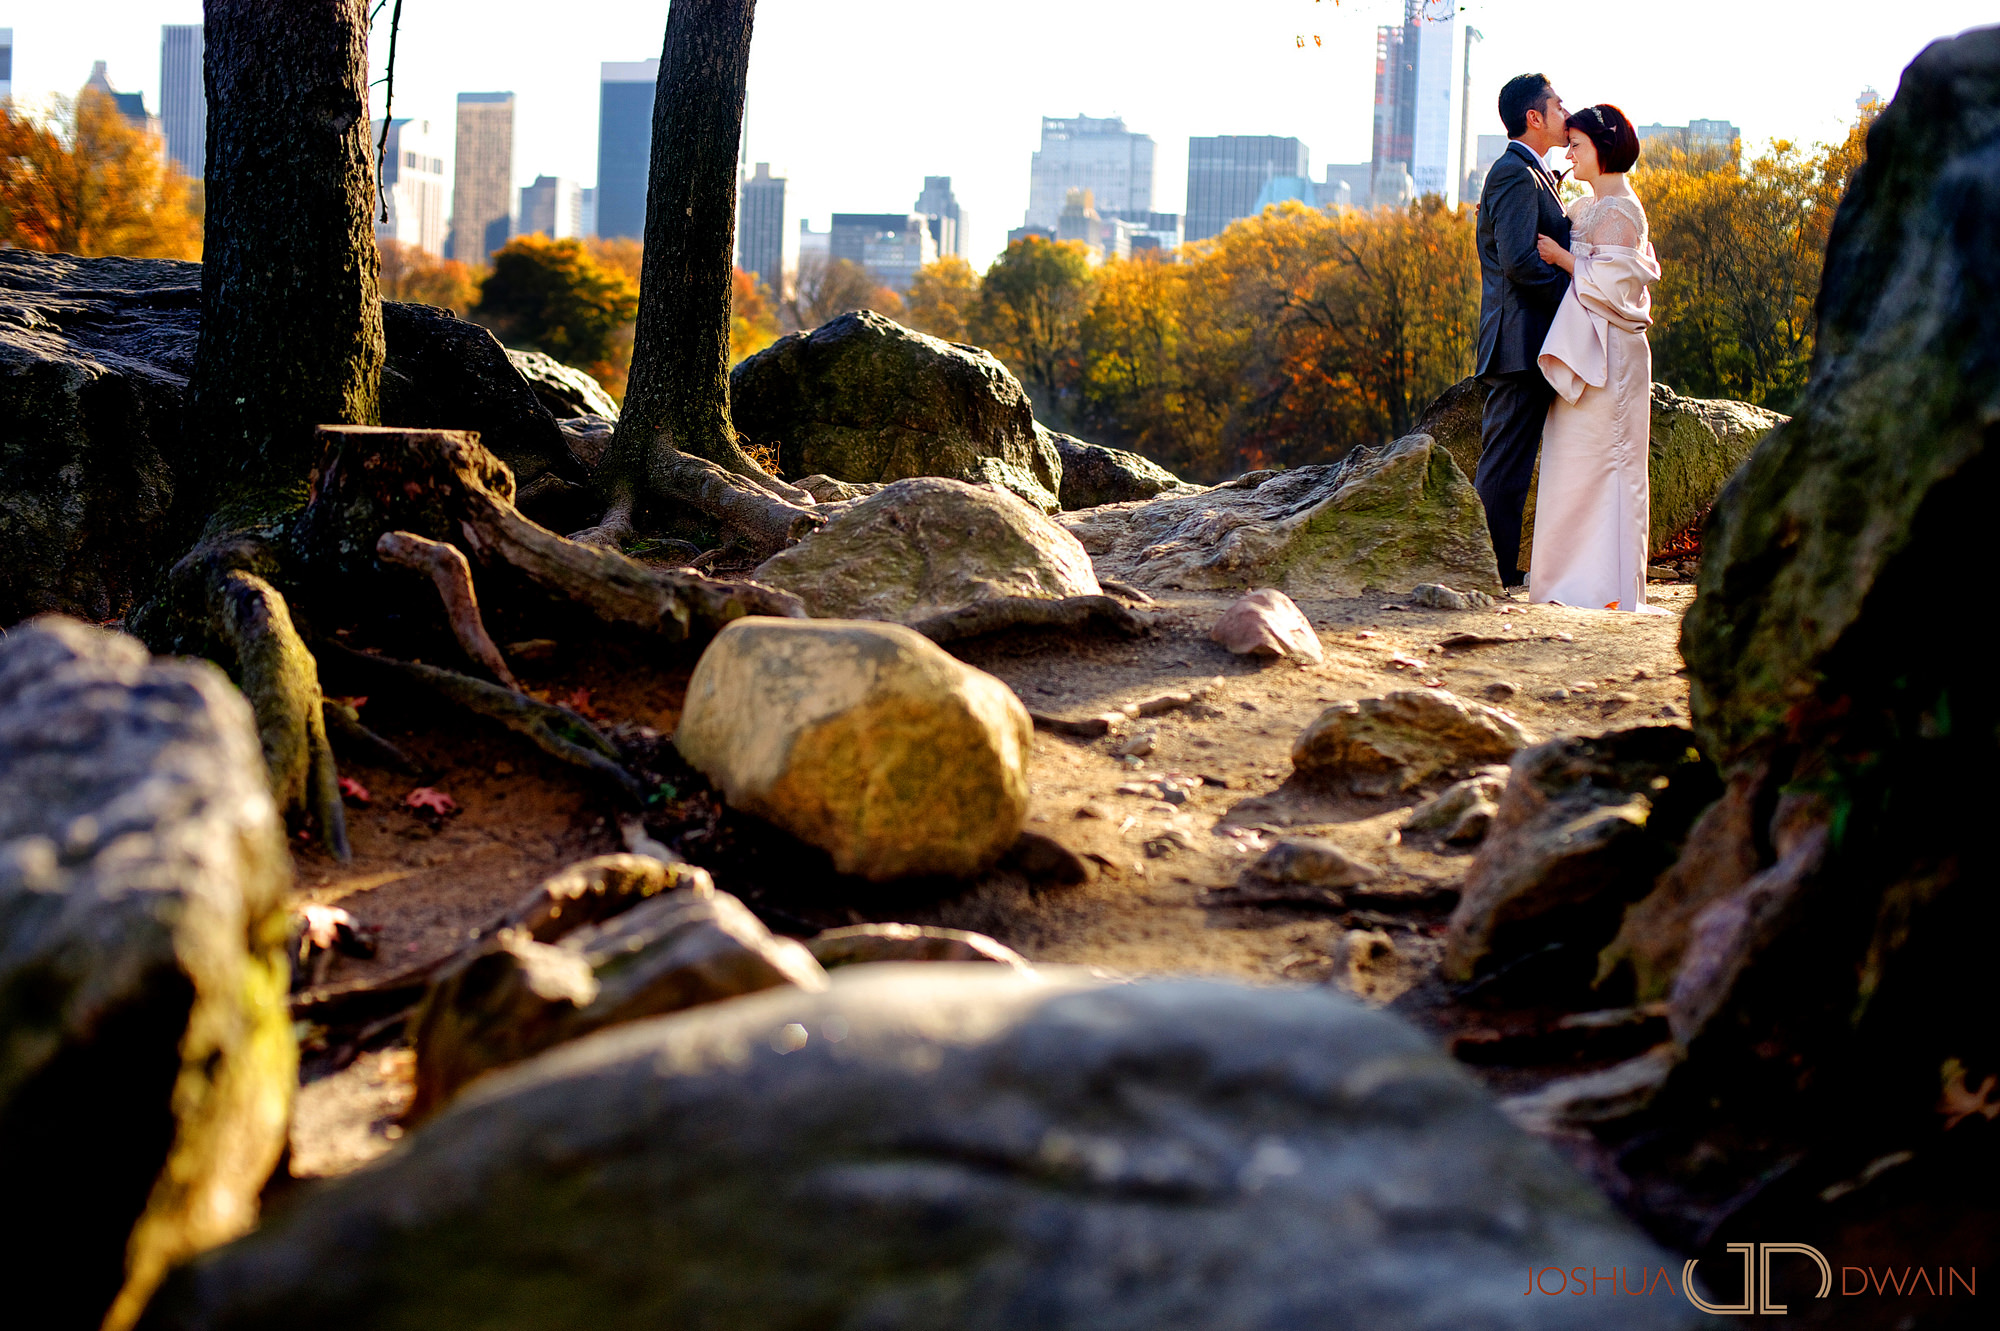 new-york-city-elopement-wedding-photography-001-joshua-dwain